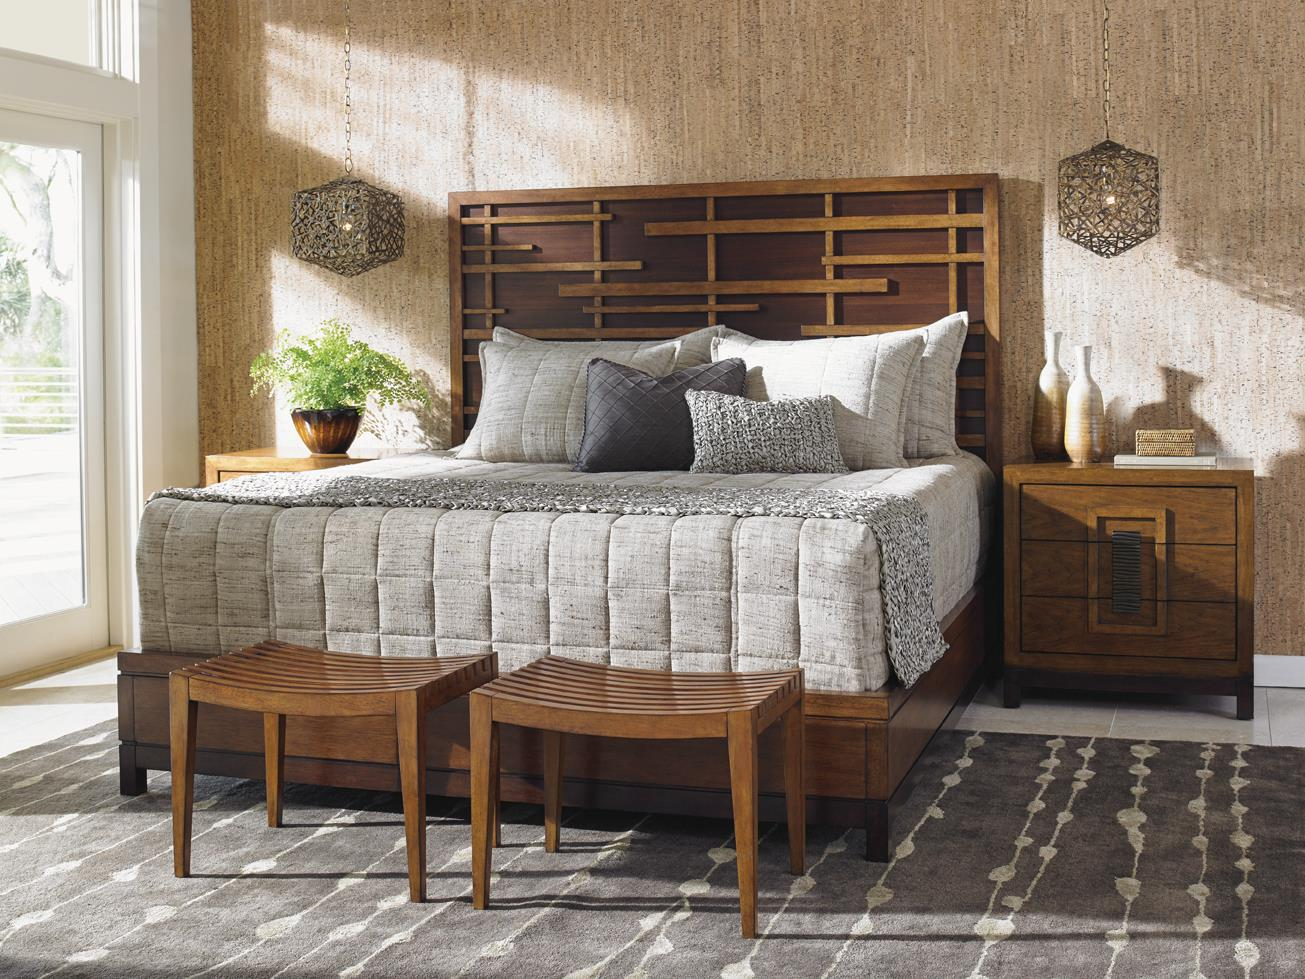 Tommy Bahama Home Island Fusion Queen Bedroom Group - Item Number: 556 Q Bedroom Group 3